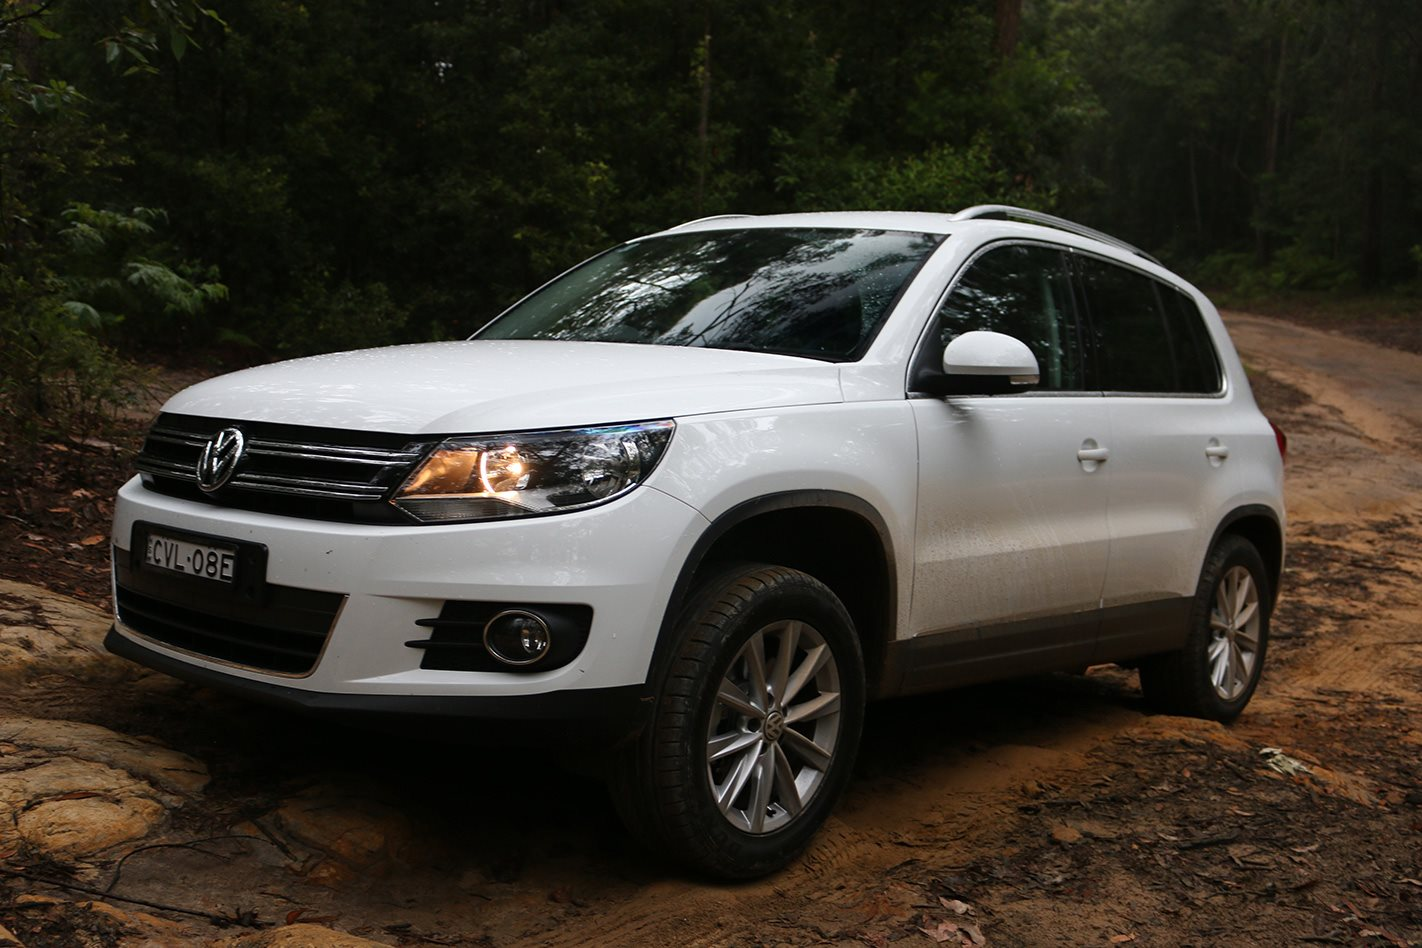 volkswagen tiguan 130tdi review 4x4 australia. Black Bedroom Furniture Sets. Home Design Ideas